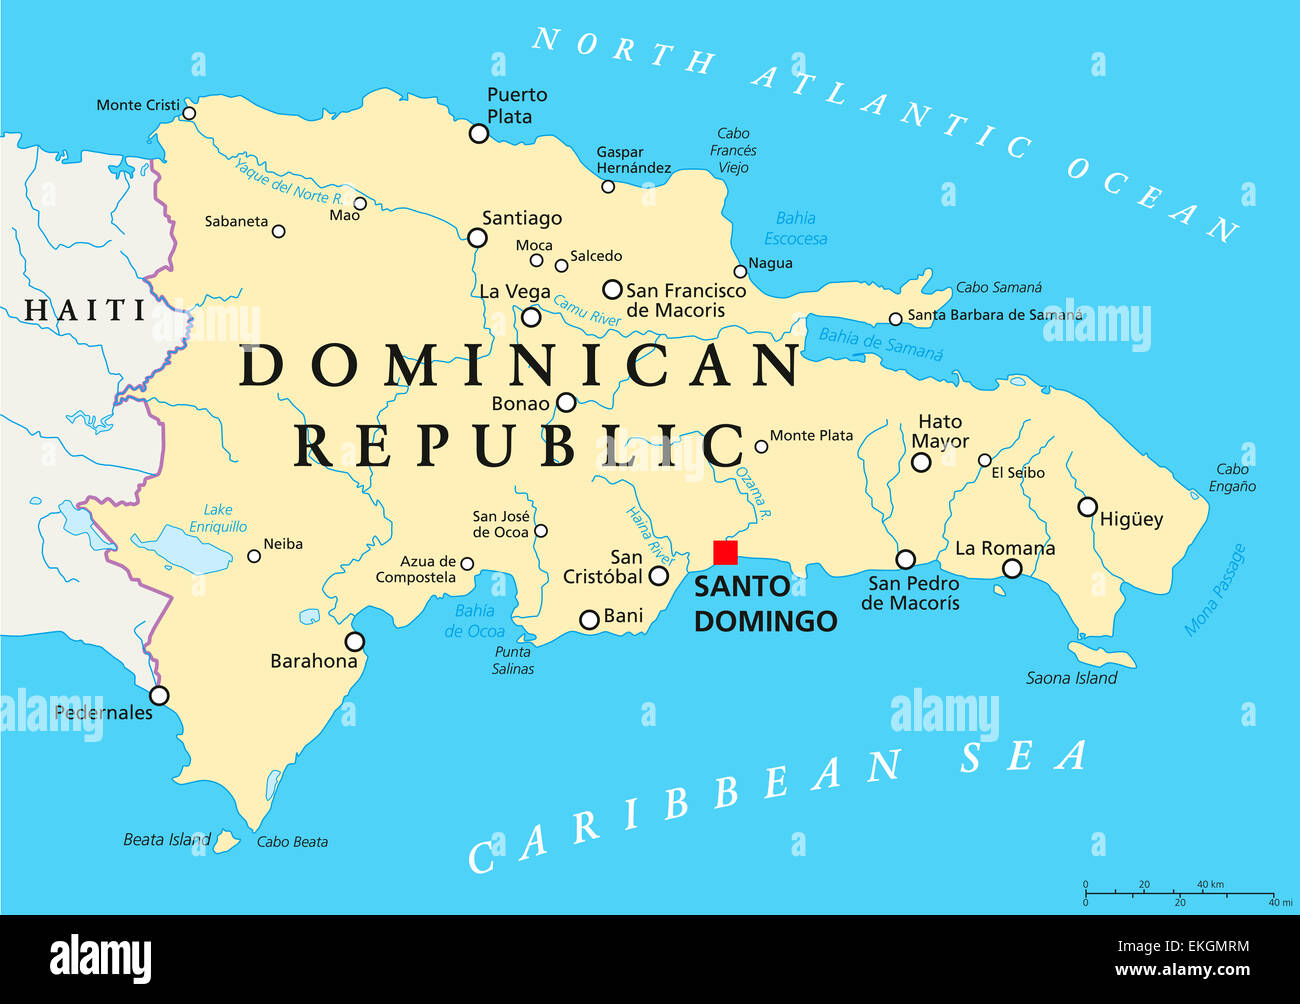 Dominican Republic Map Stock Photos & Dominican Republic Map Stock ...